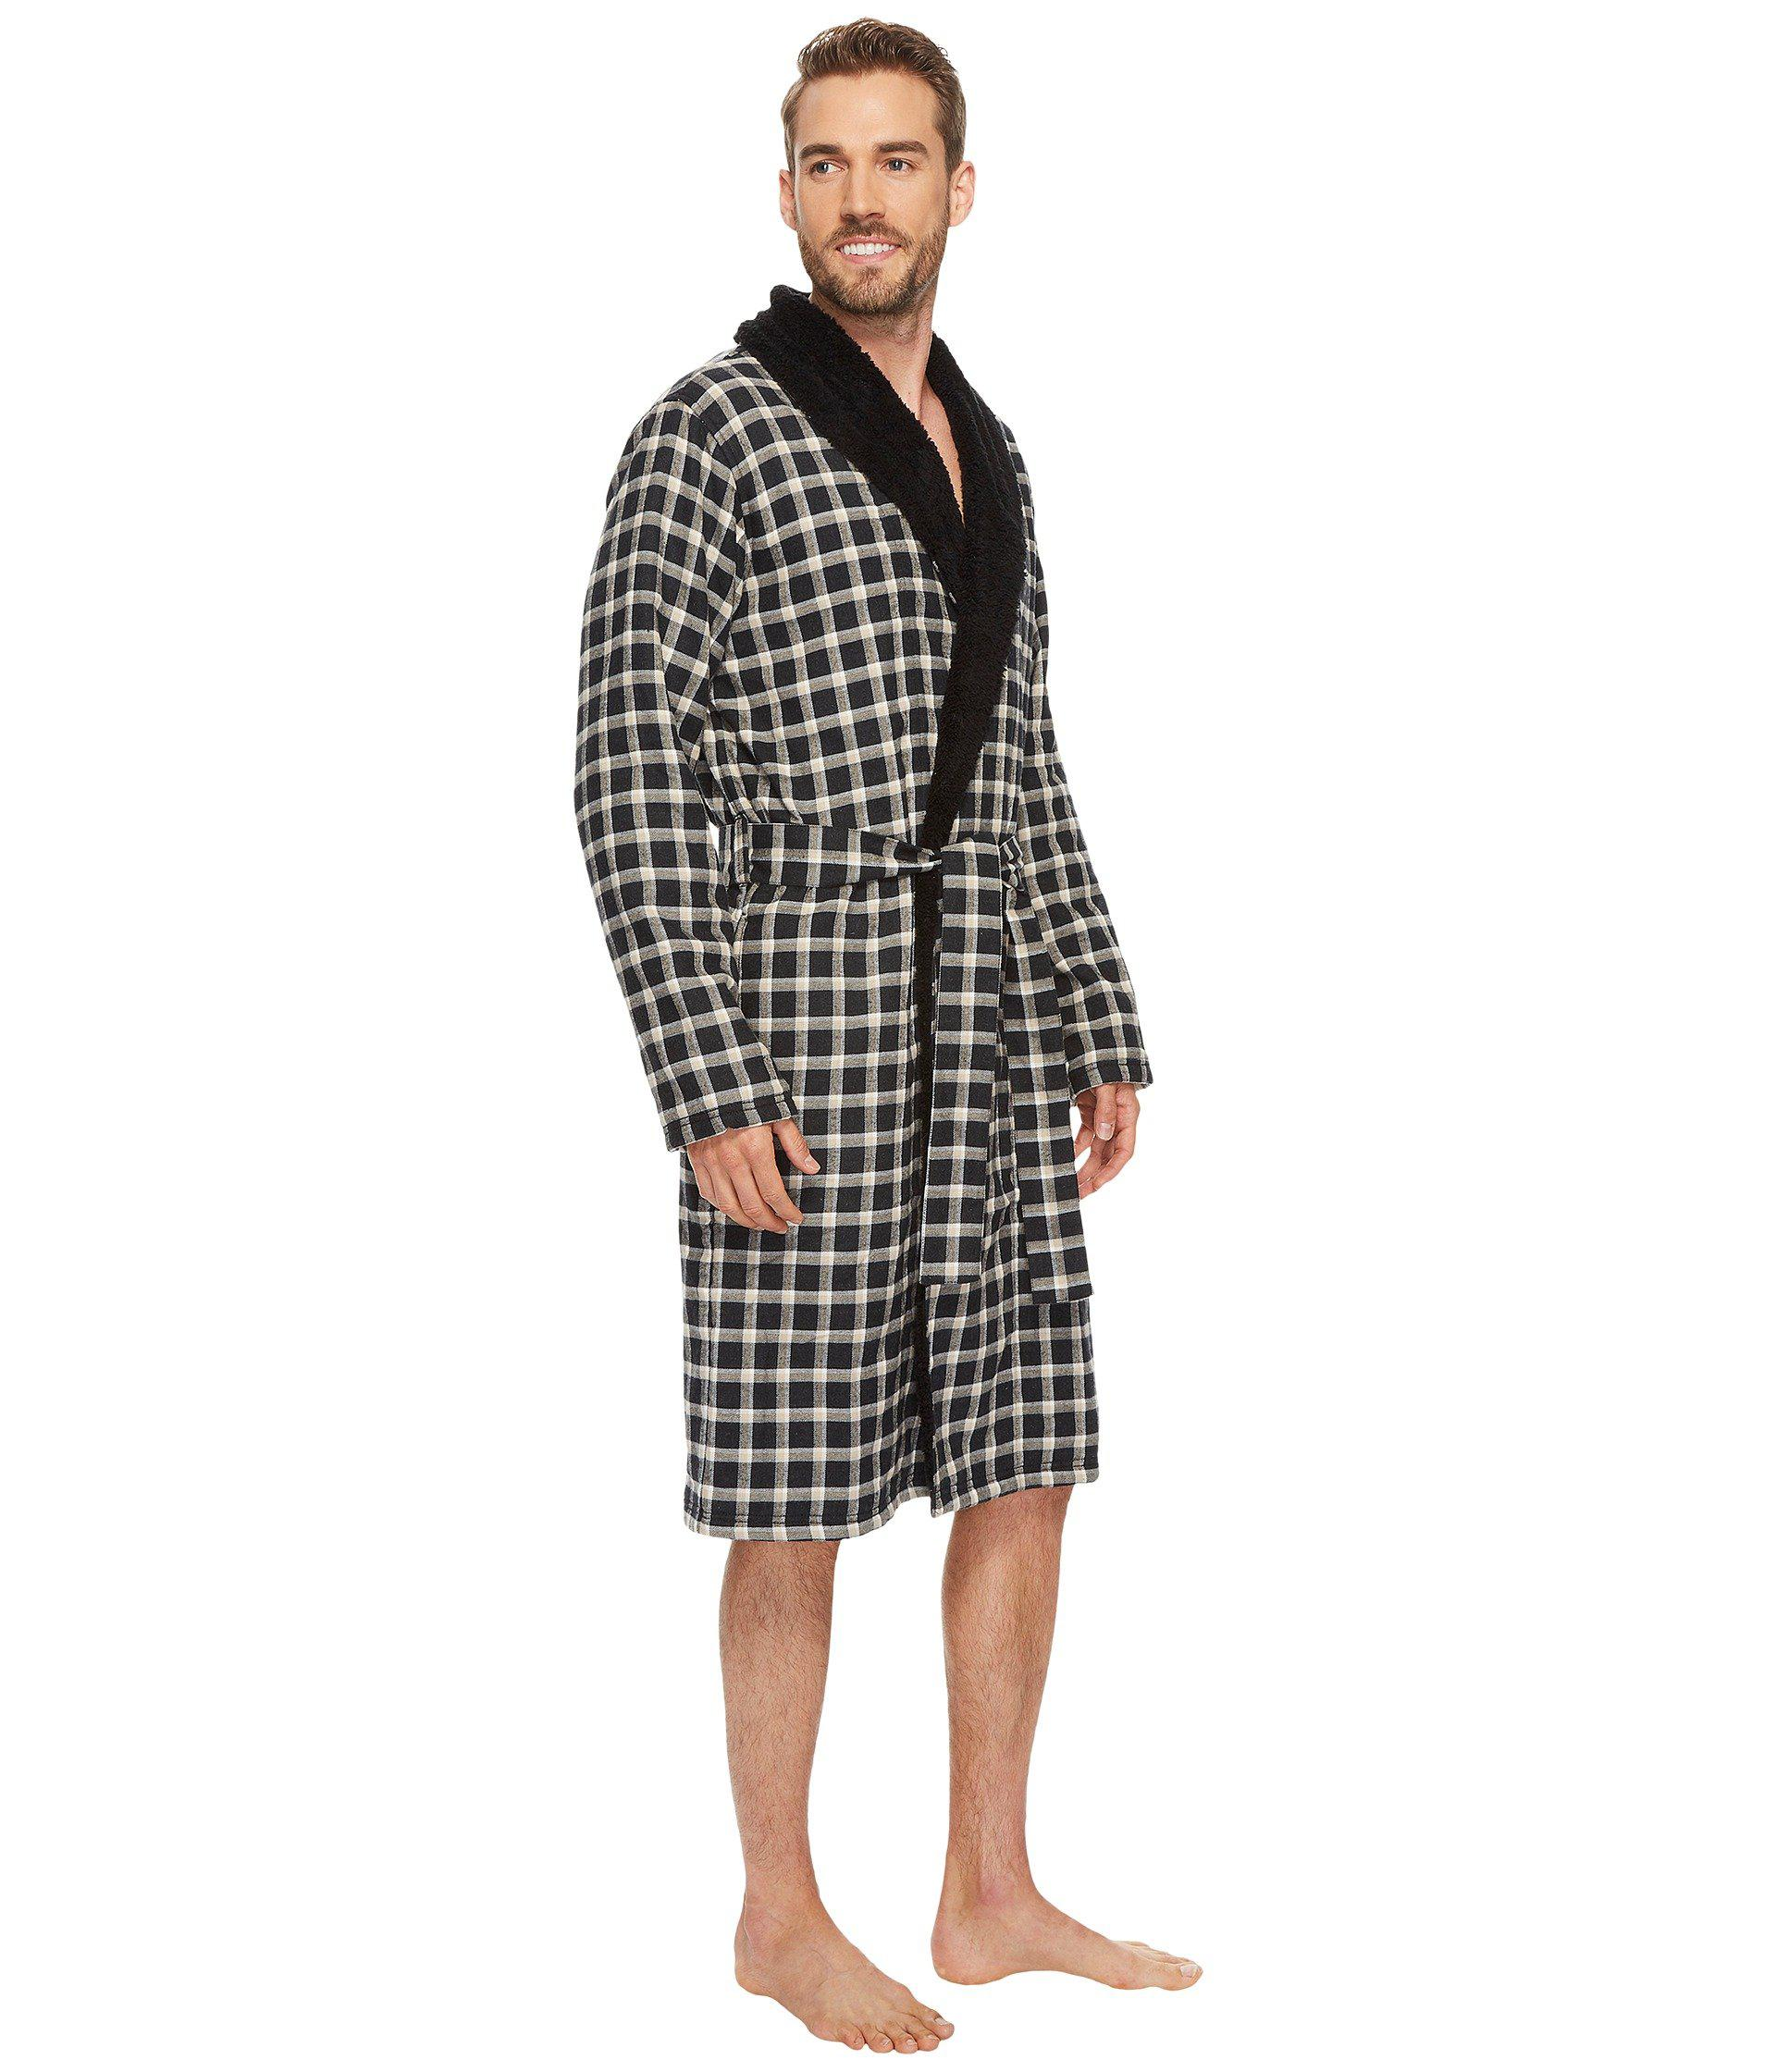 890d2b1cac Lyst - Ugg Kalib Plaid Robe in Black for Men